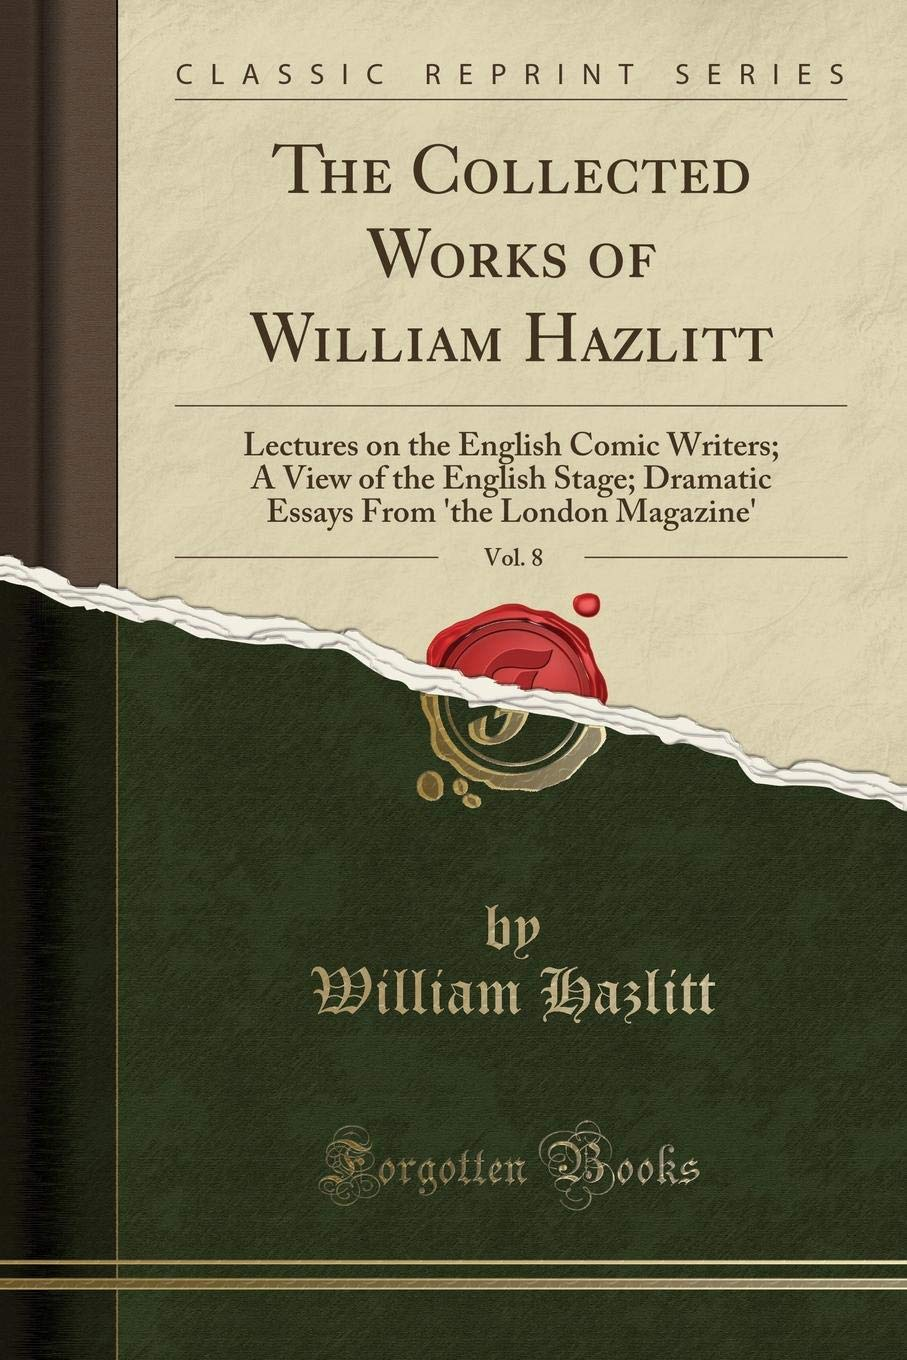 The Collected Works of William Hazlitt, Vol. 8: Lectures on the English Comic Writers; A View of the English Stage; Dramatic Essays From 'the London Magazine' (Classic Reprint) pdf epub